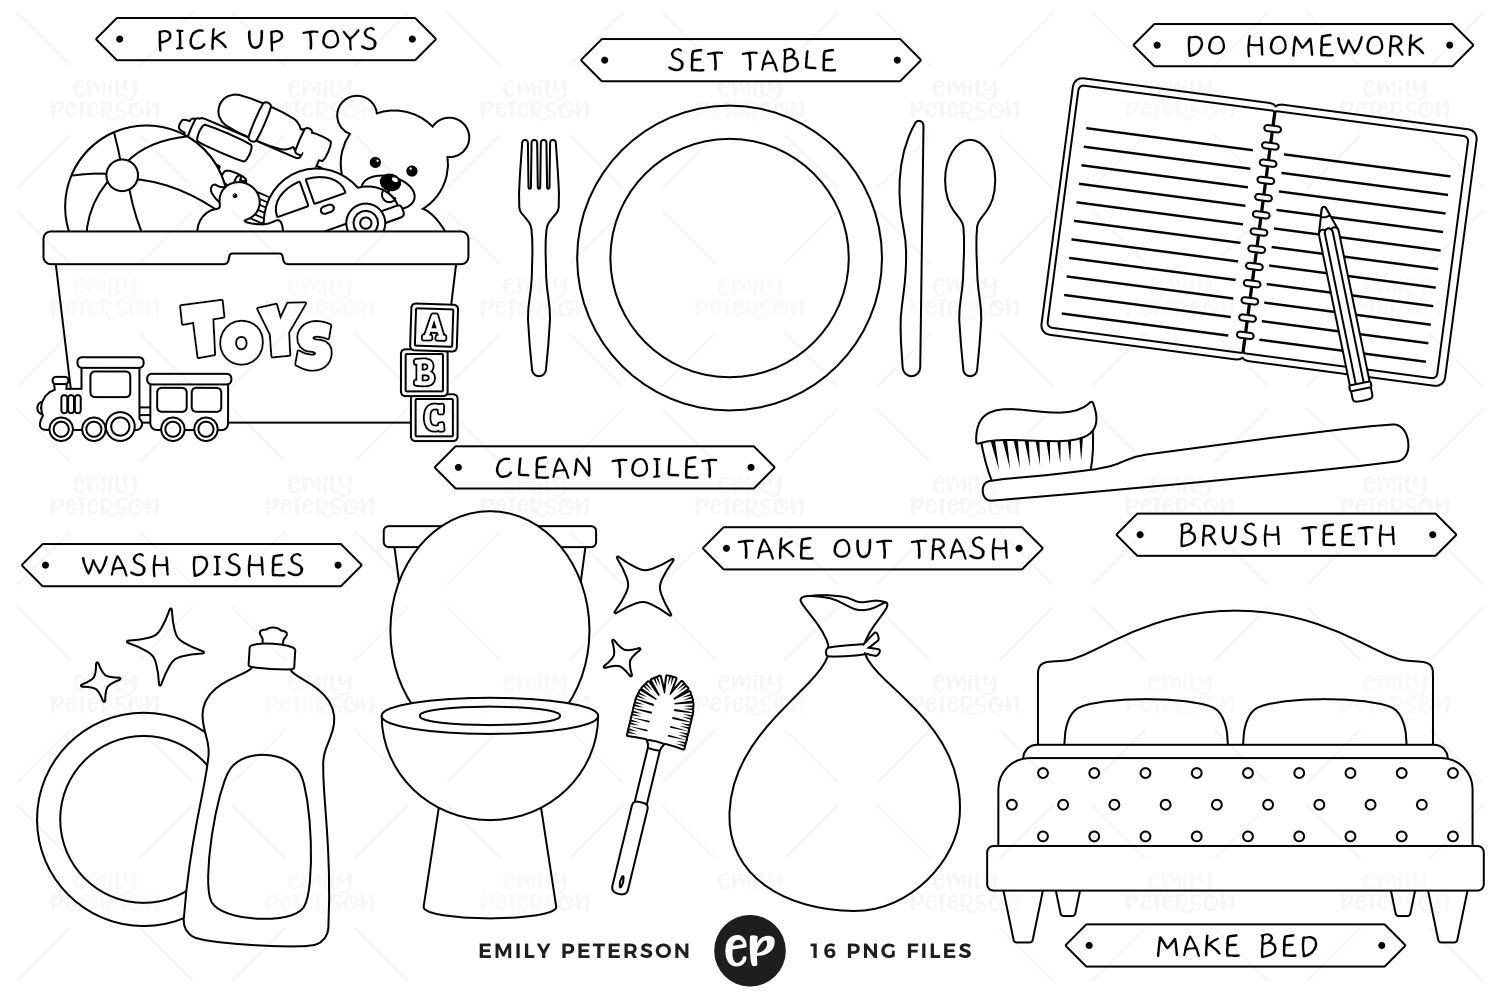 Kids Chores Digital Stamps Ad Quality Png Saved High Ad